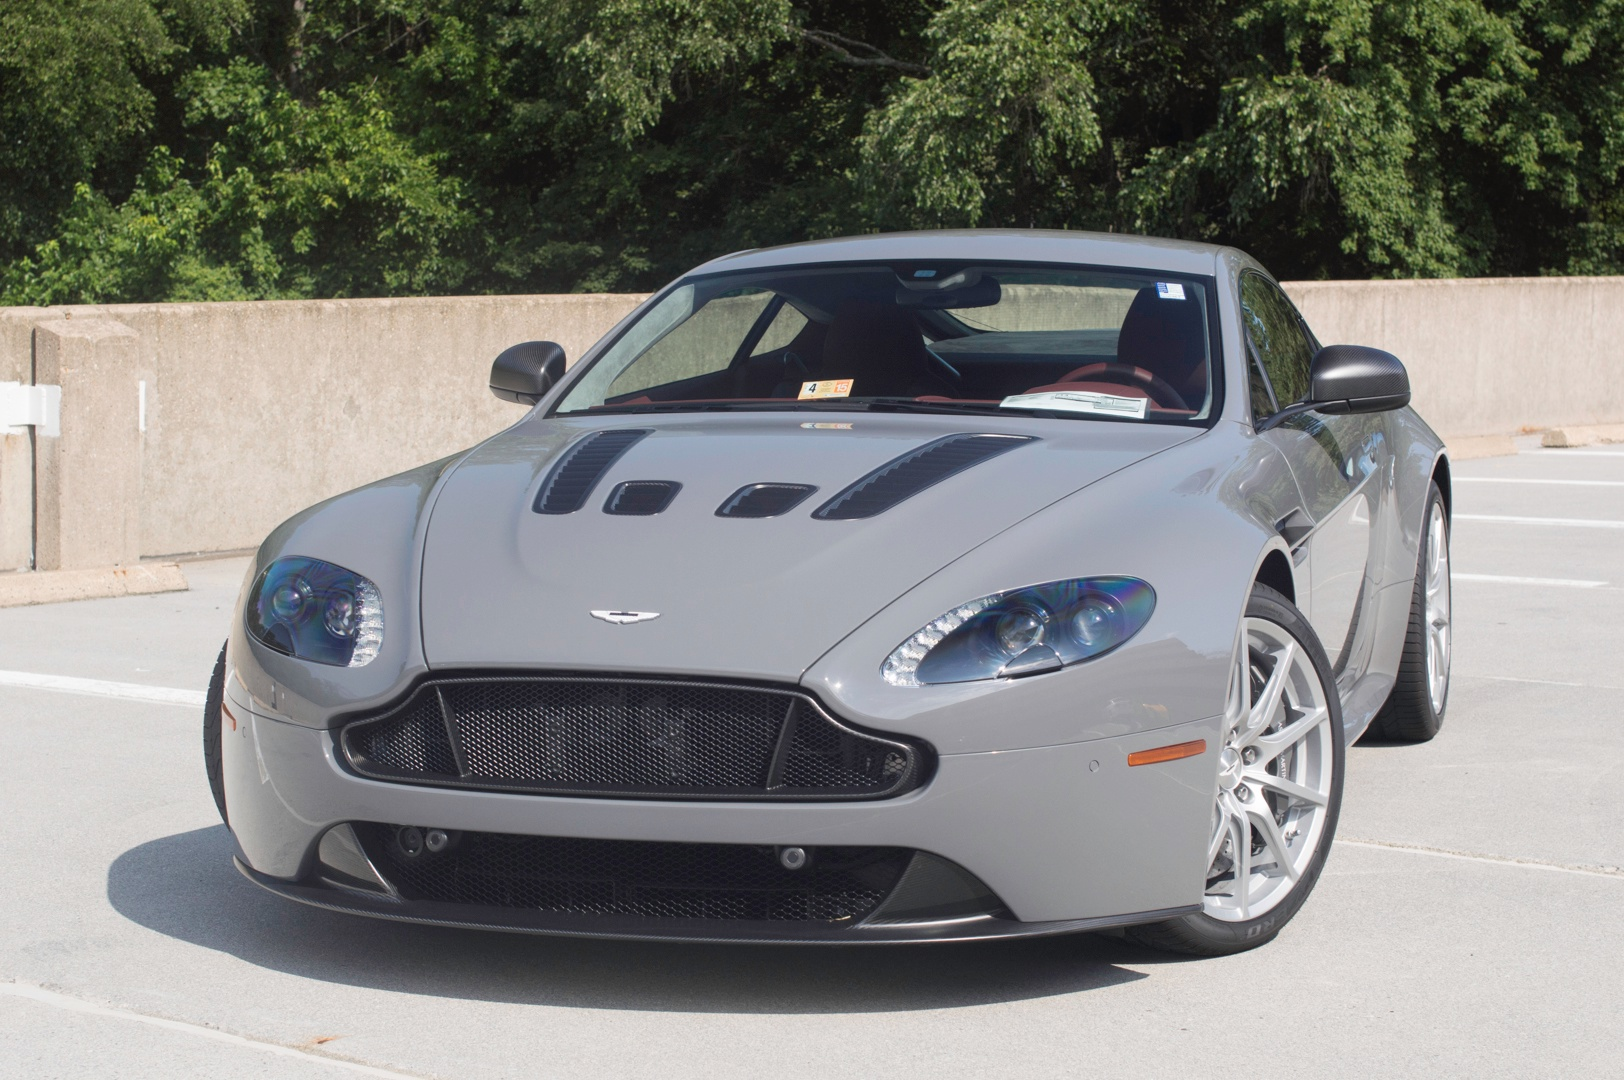 2015 aston martin v12 vantage coupe stock # 5ns01663 for sale near